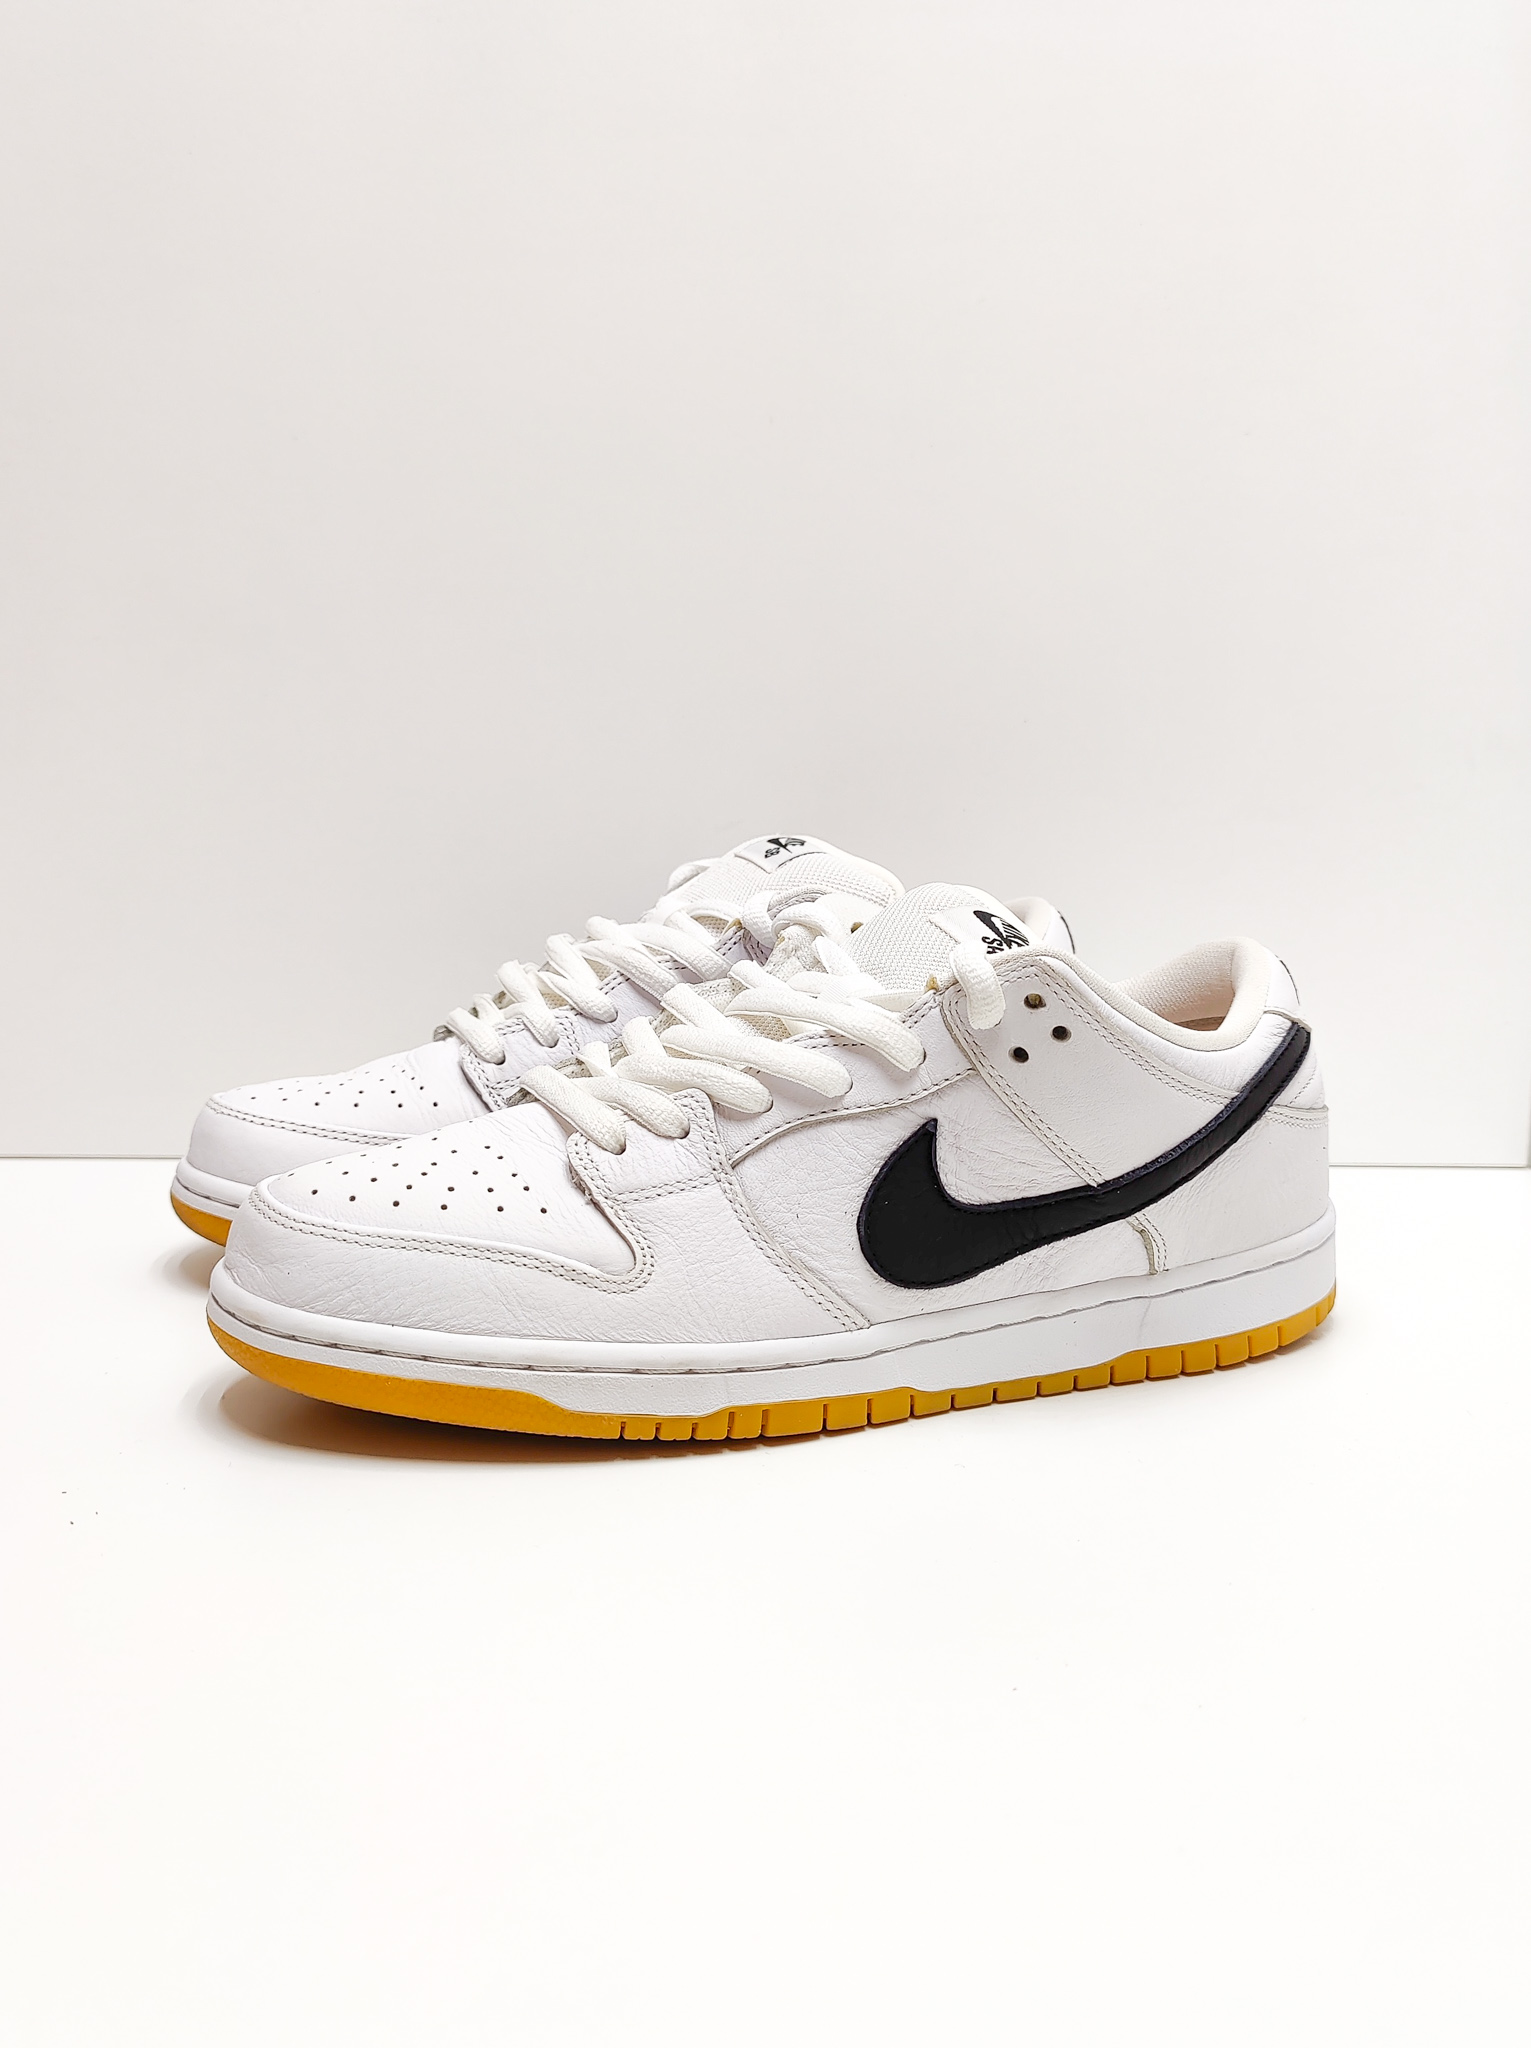 Nike SB Dunk Low Orange Label White